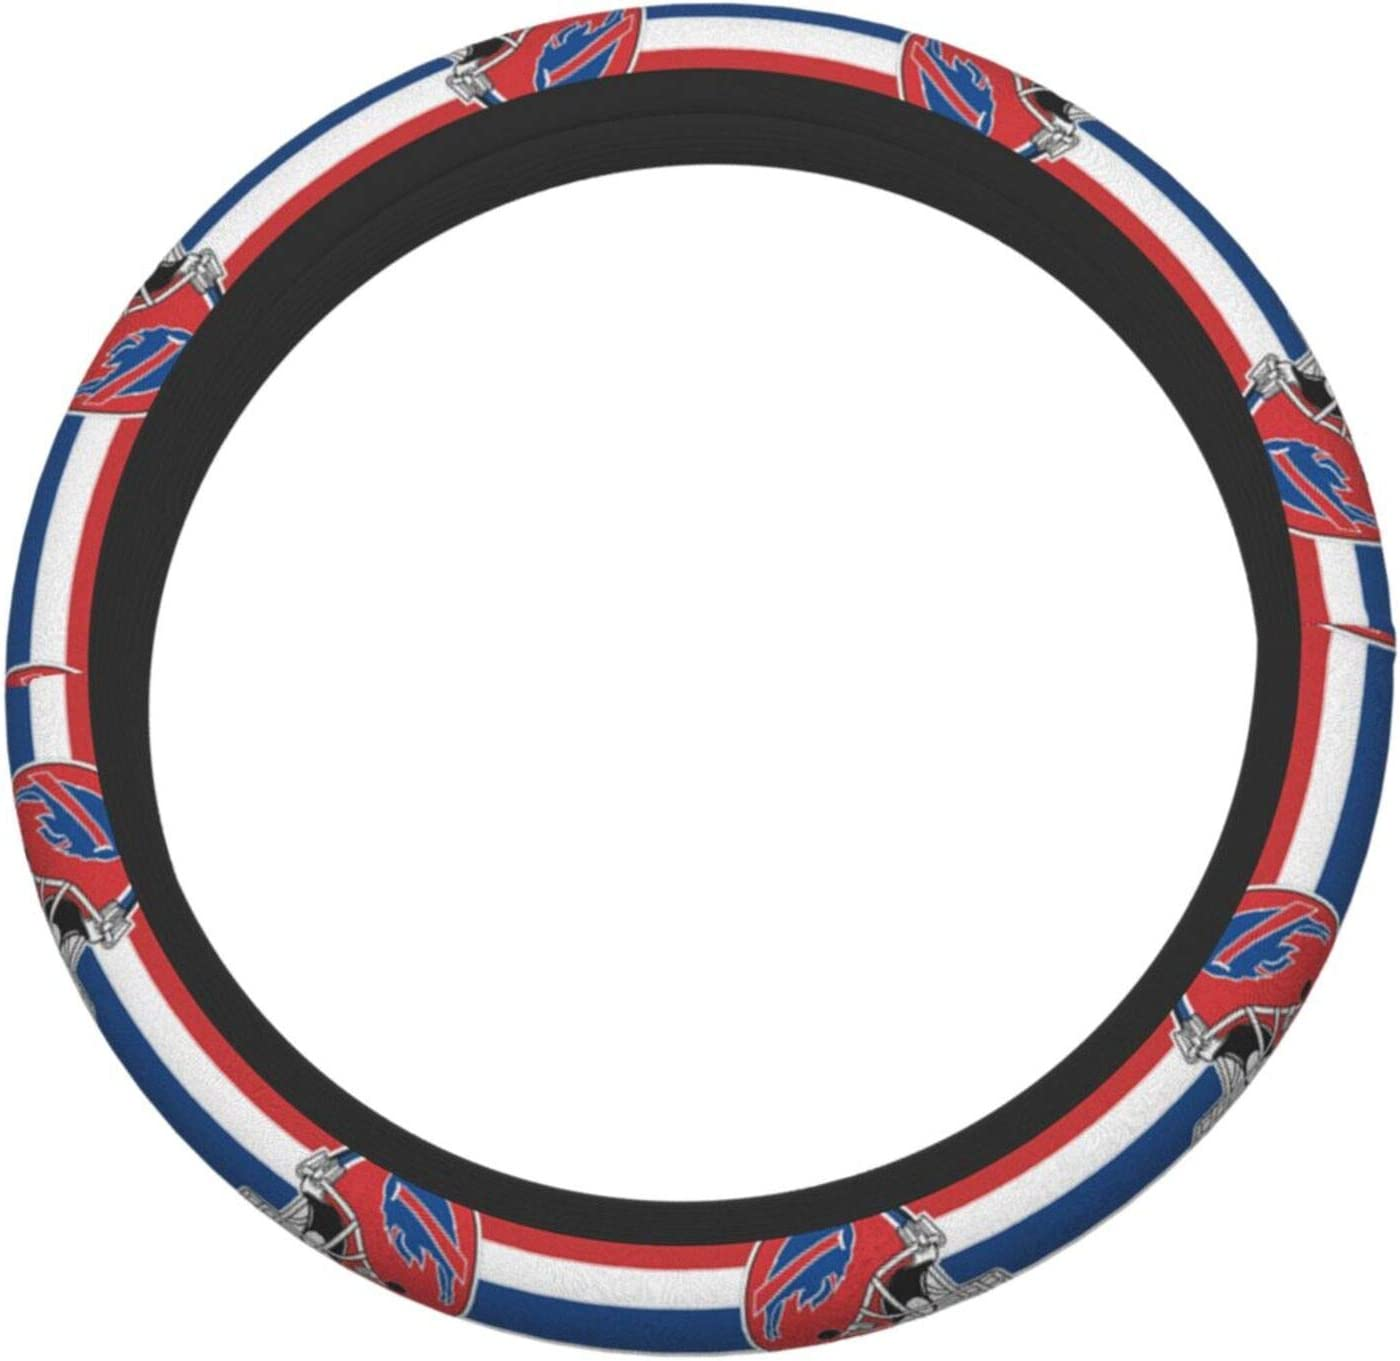 Suzzc Rugby Team Steering Wheel Cover Anti-Slip and Odorless Interior Decoration for Car